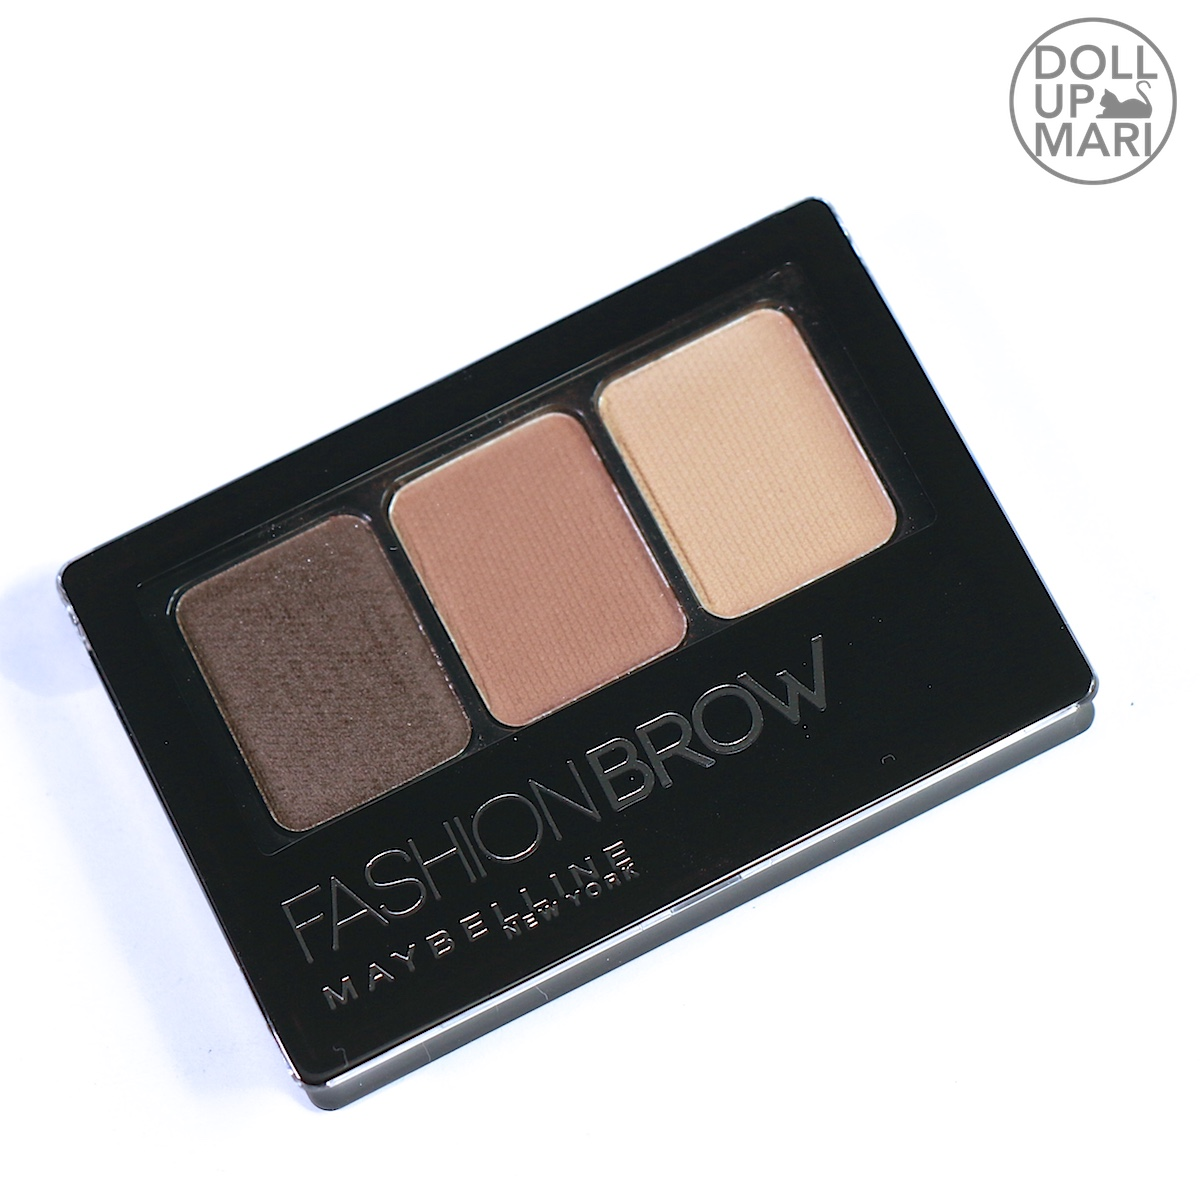 b23533a333e Maybelline Fashion Brow Palette (Dark Brown) Review and Swatches ...